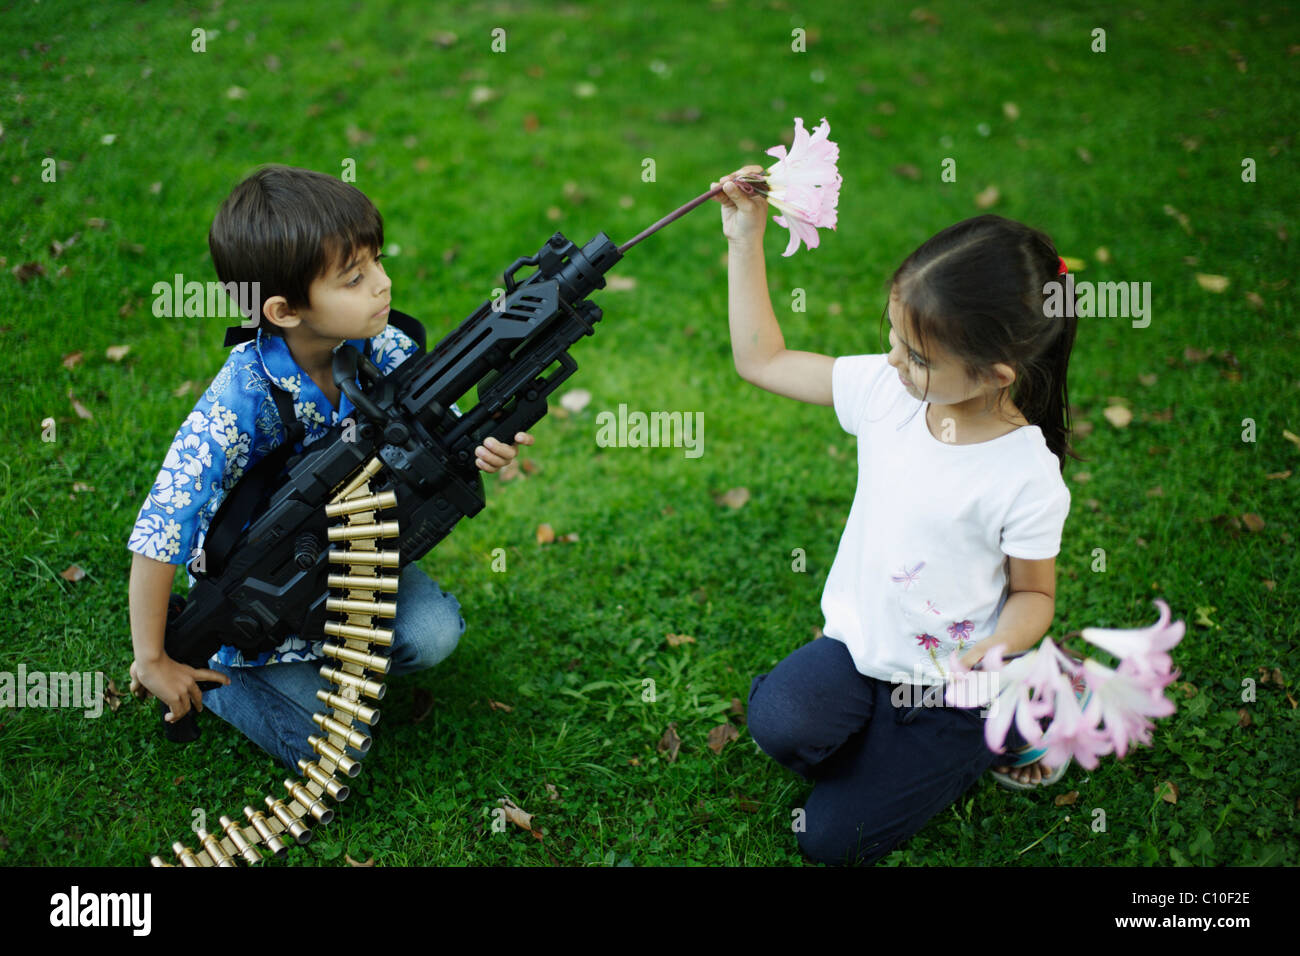 Five year old girl places flowers in barrel of her brother's toy machine gun - Stock Image